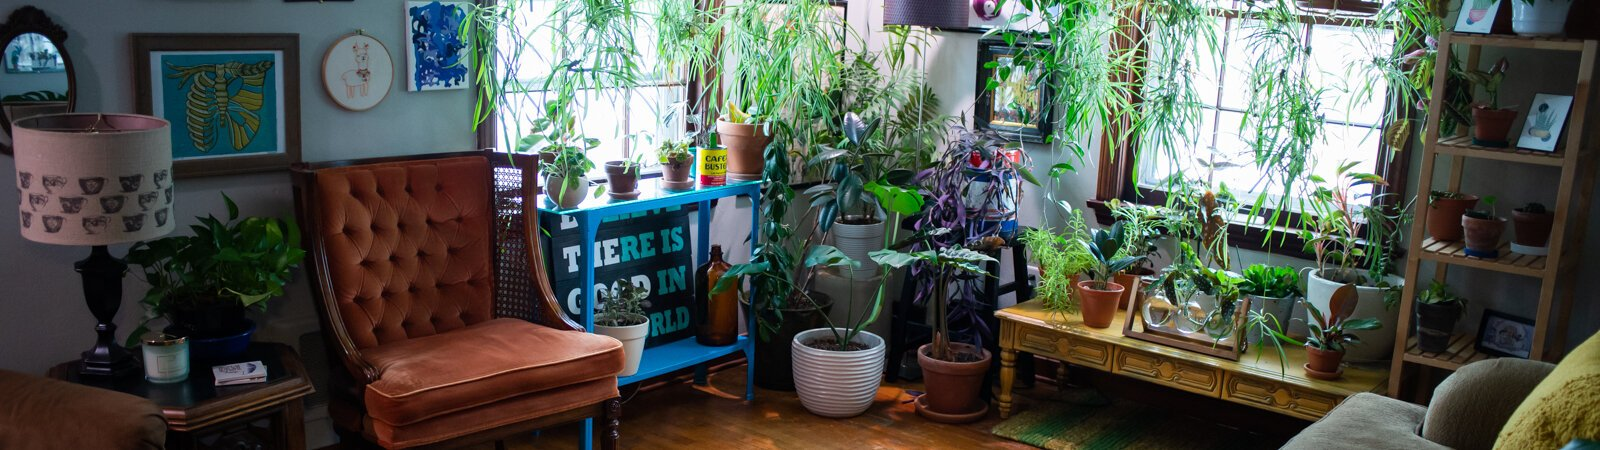 Local art, thrifty finds, and plants decorate this week's home tour: The Crow's Nest on Rudisill.